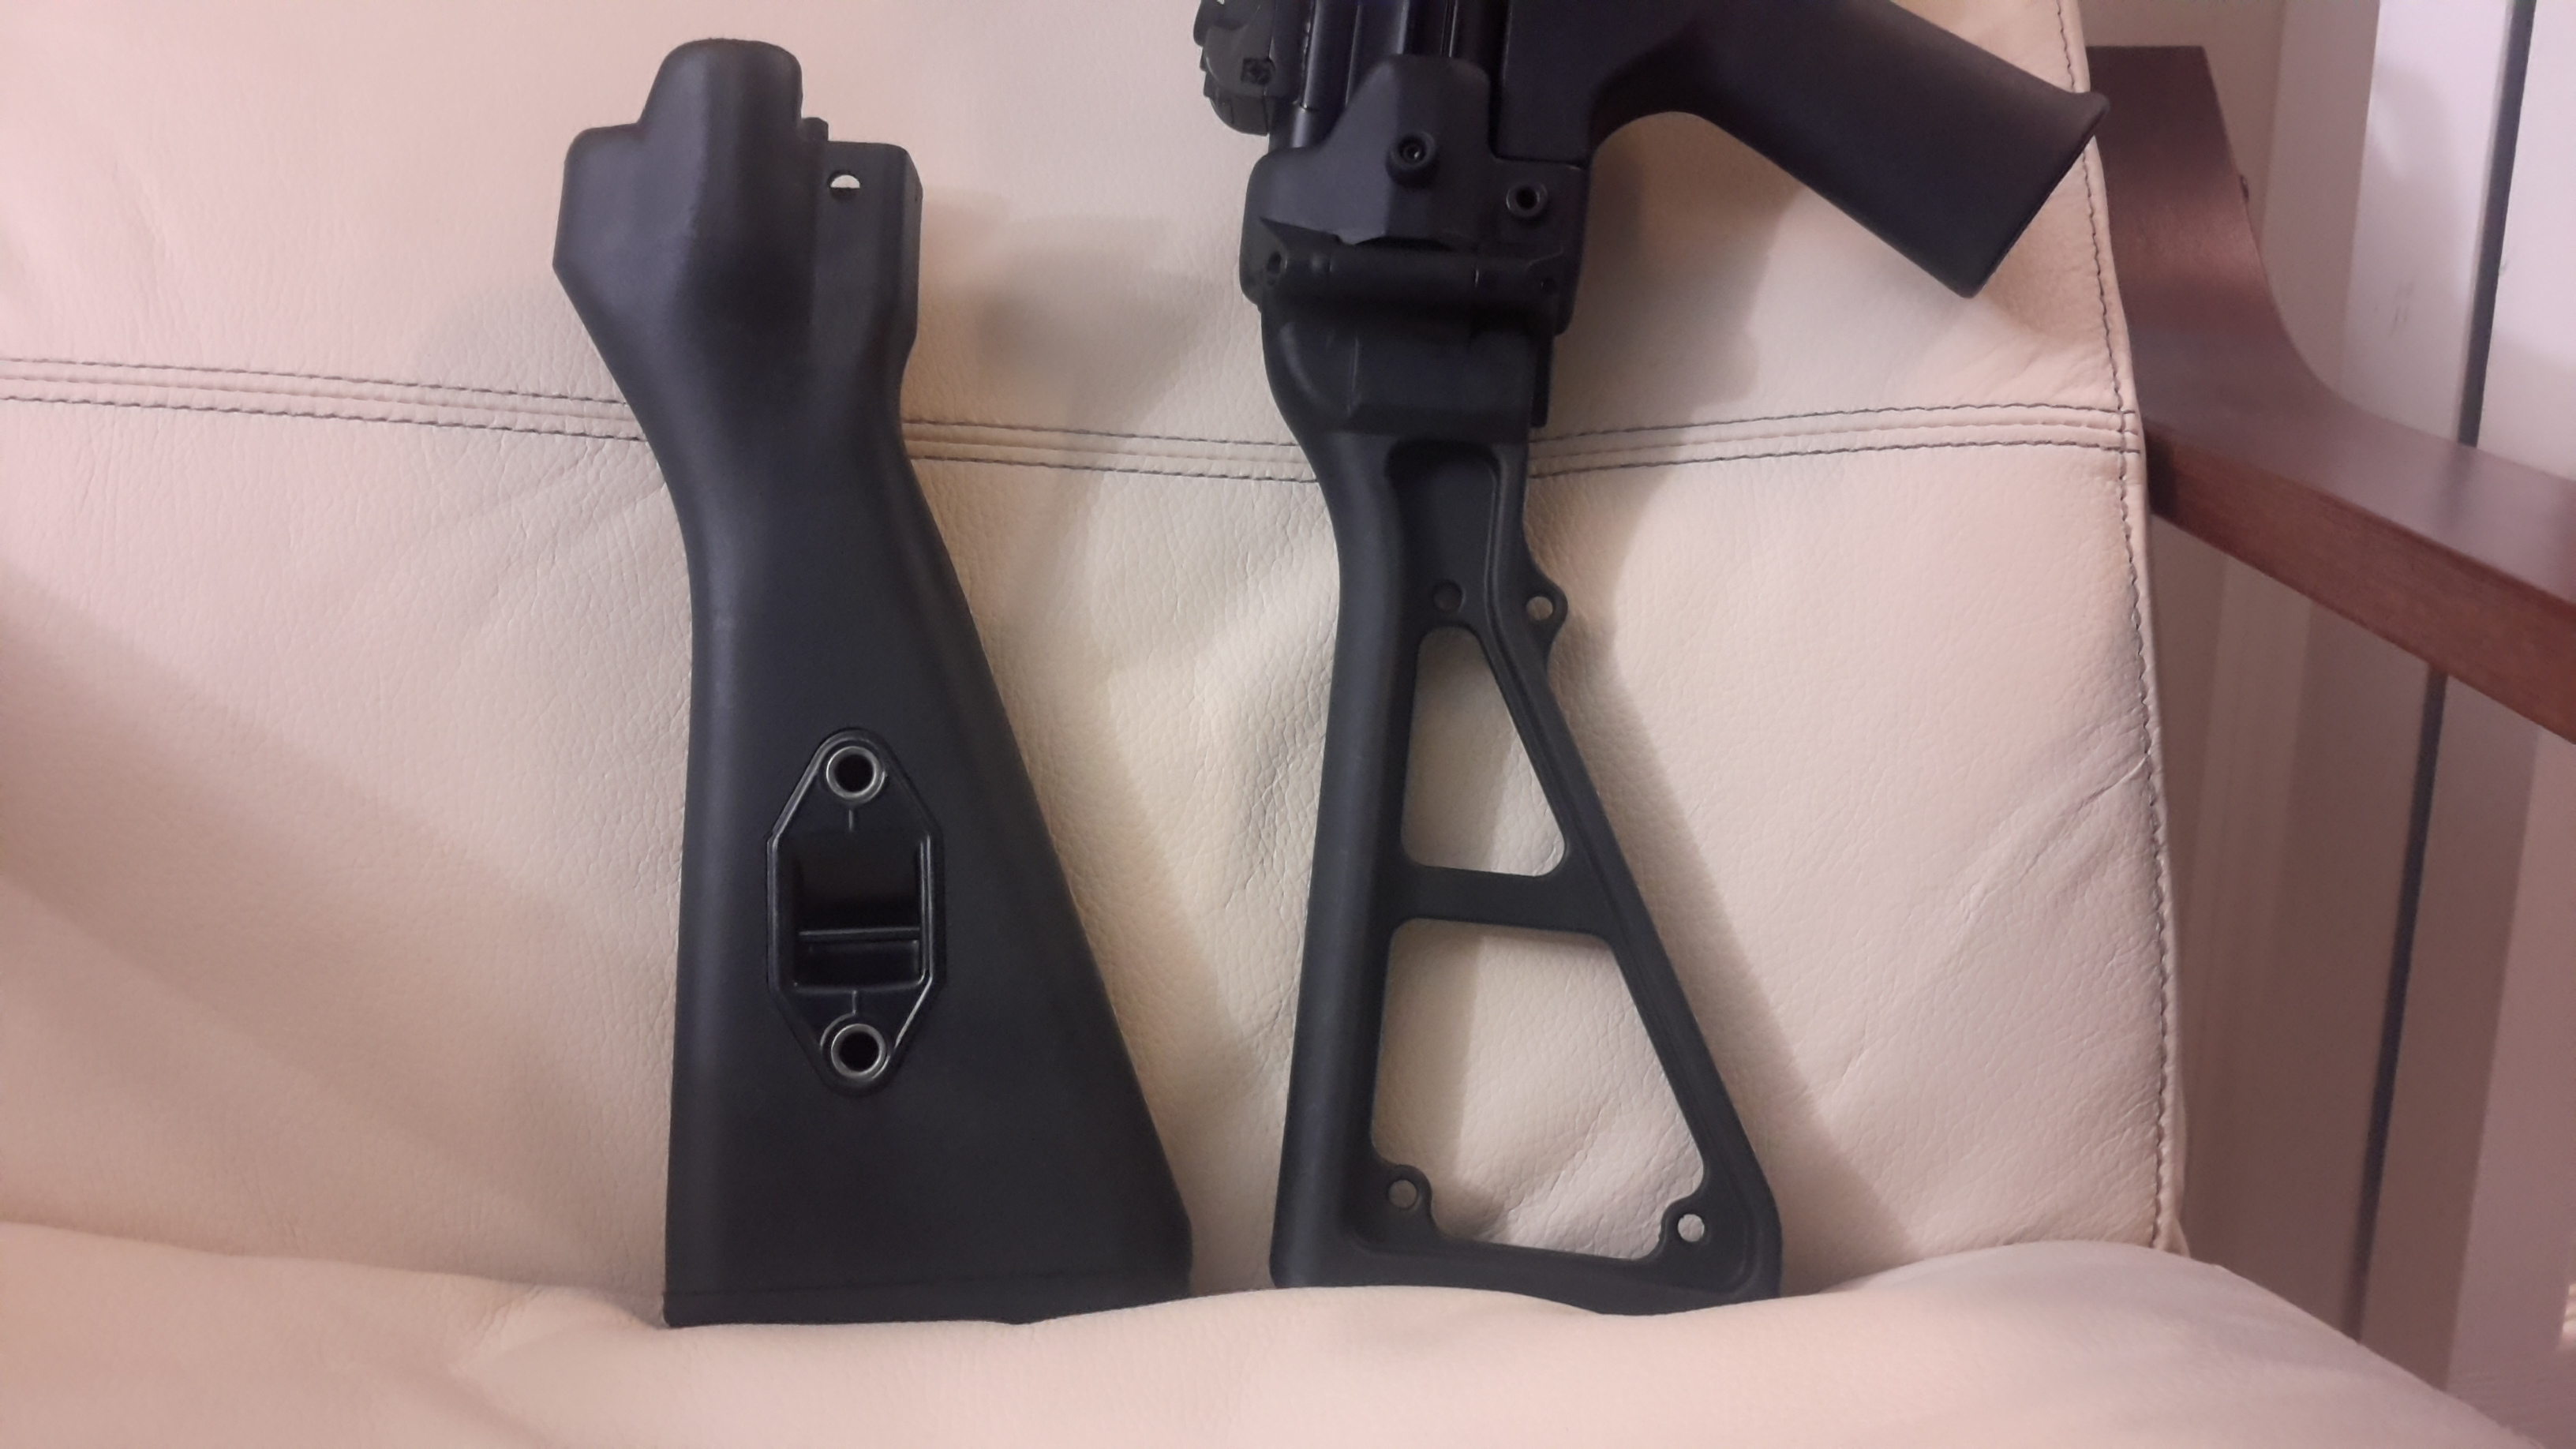 HK 91/G3 CLIPPED & PINNED S.E.F. METAL LOWER and a B & T mp5 folding stock. Like new-20171003_231644.jpg